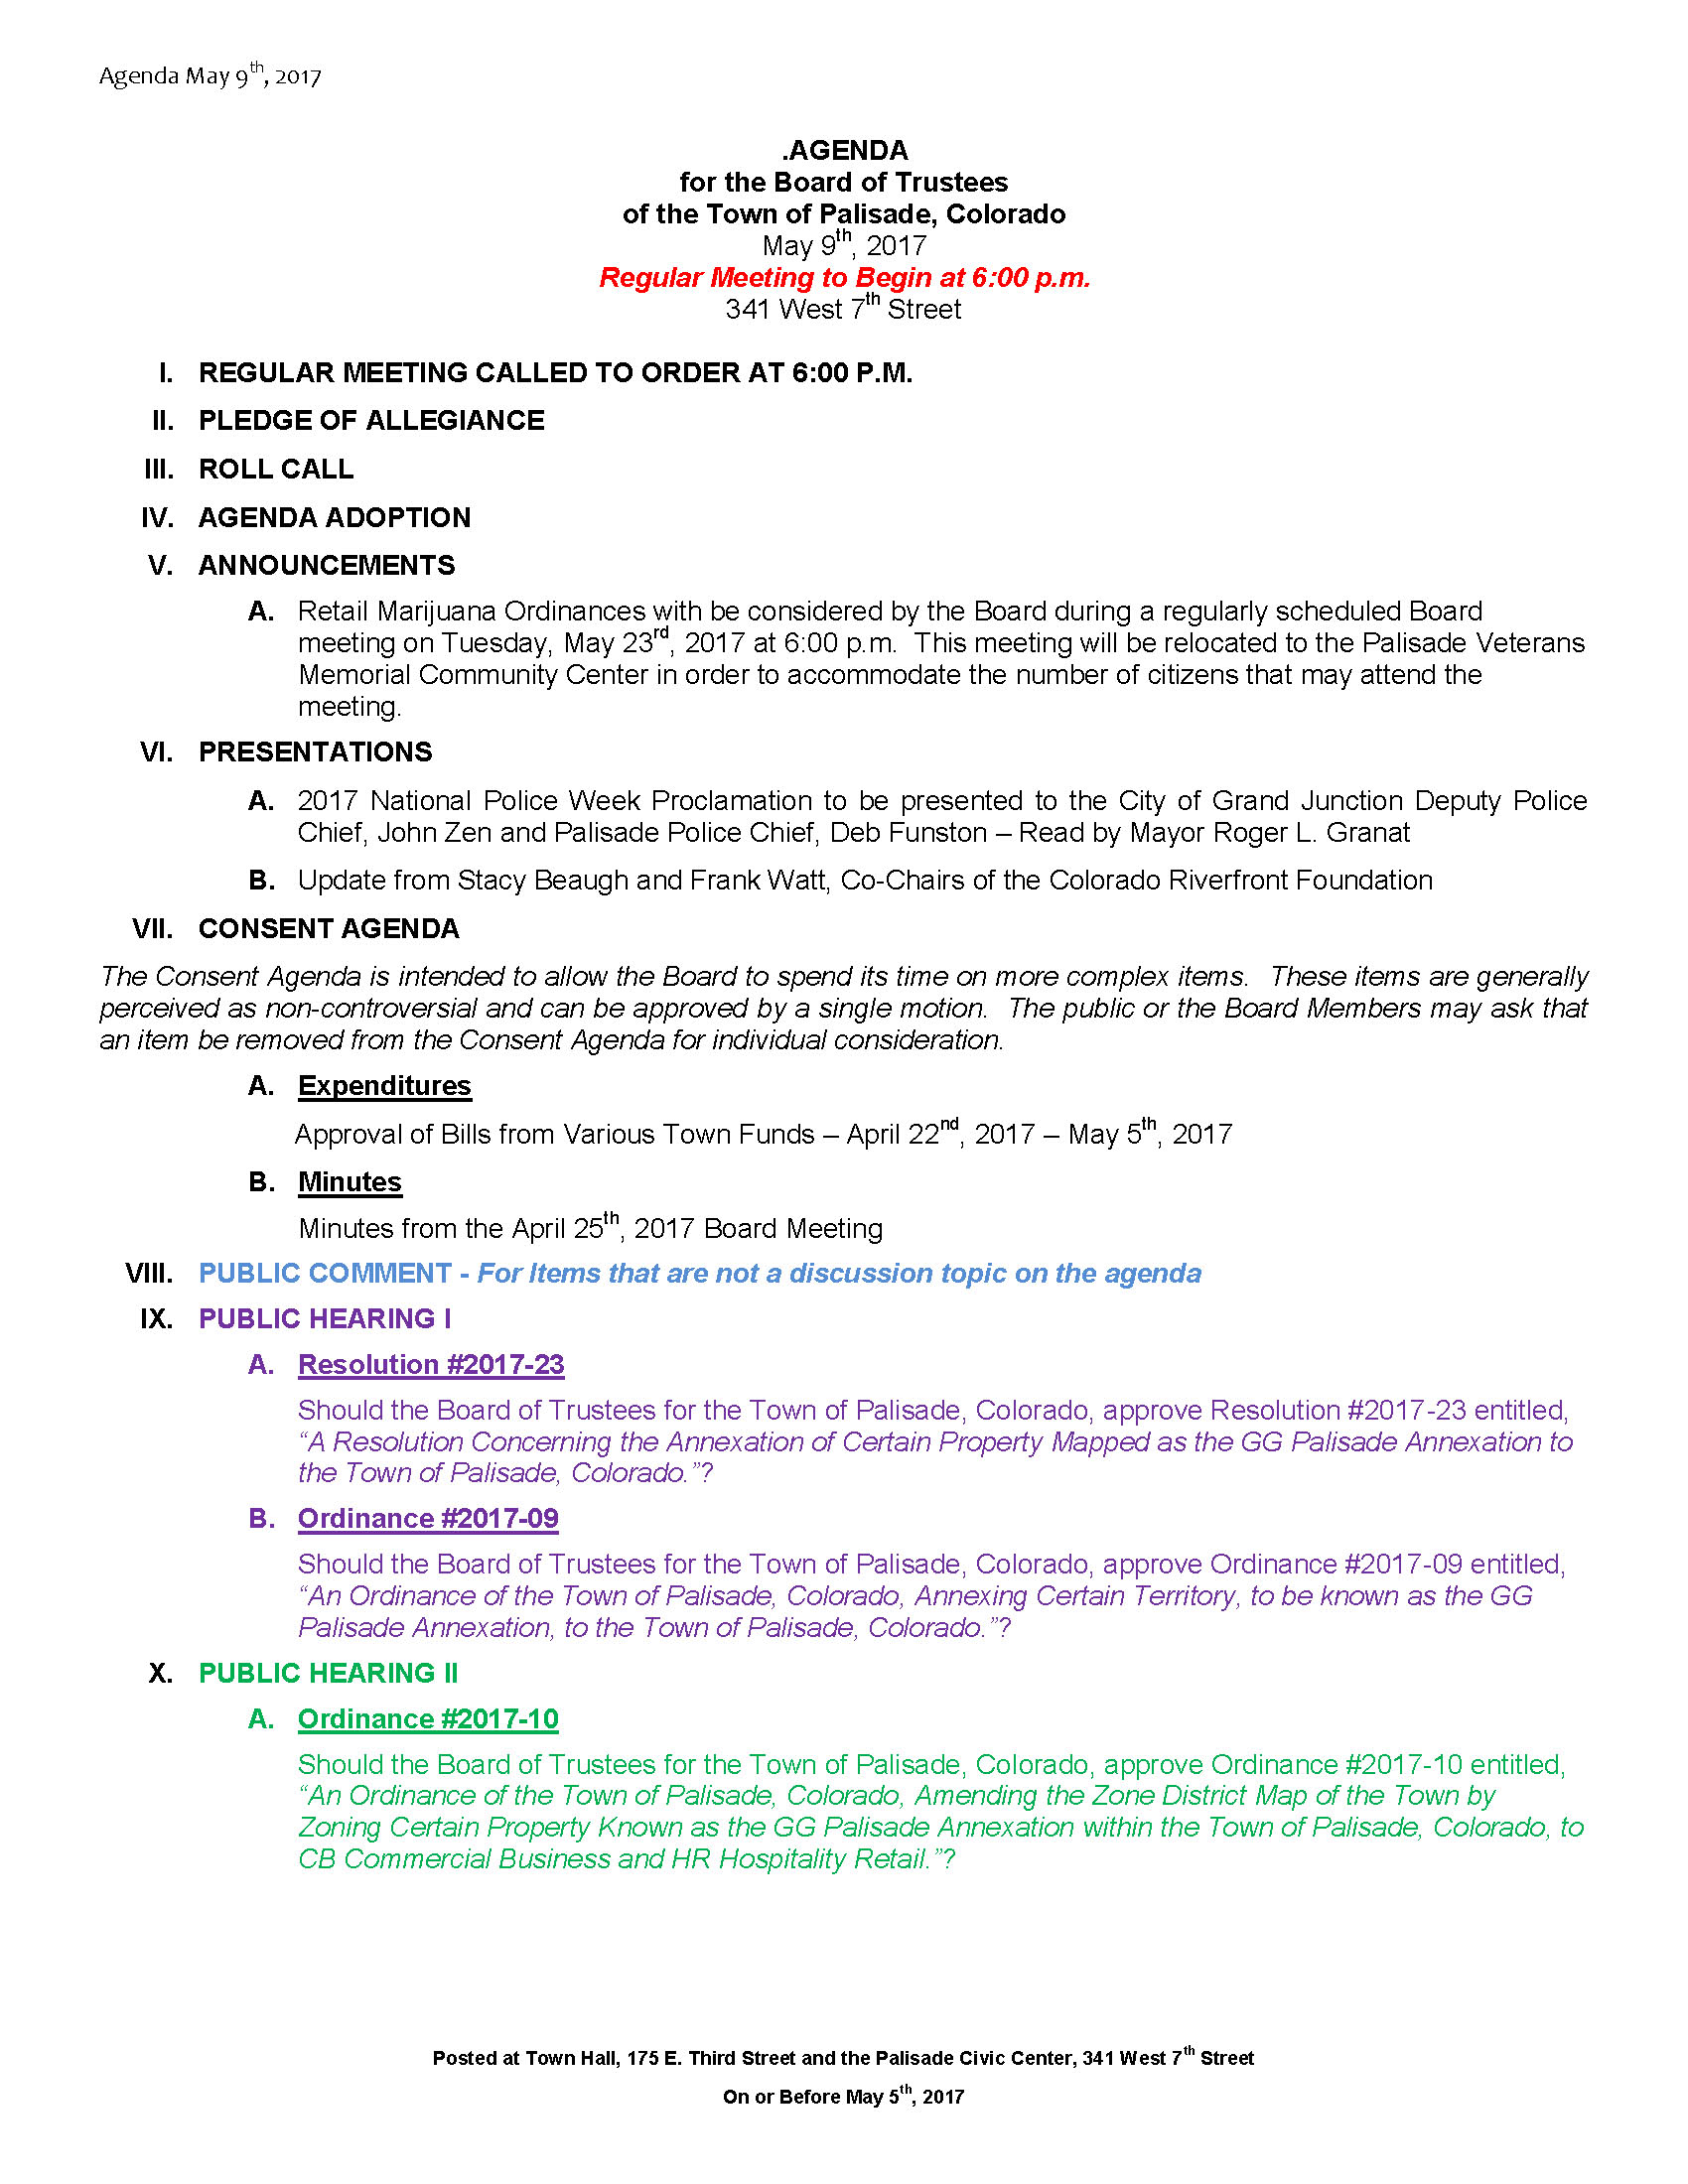 May 9th 2017 Board Meeting Agenda Page 1